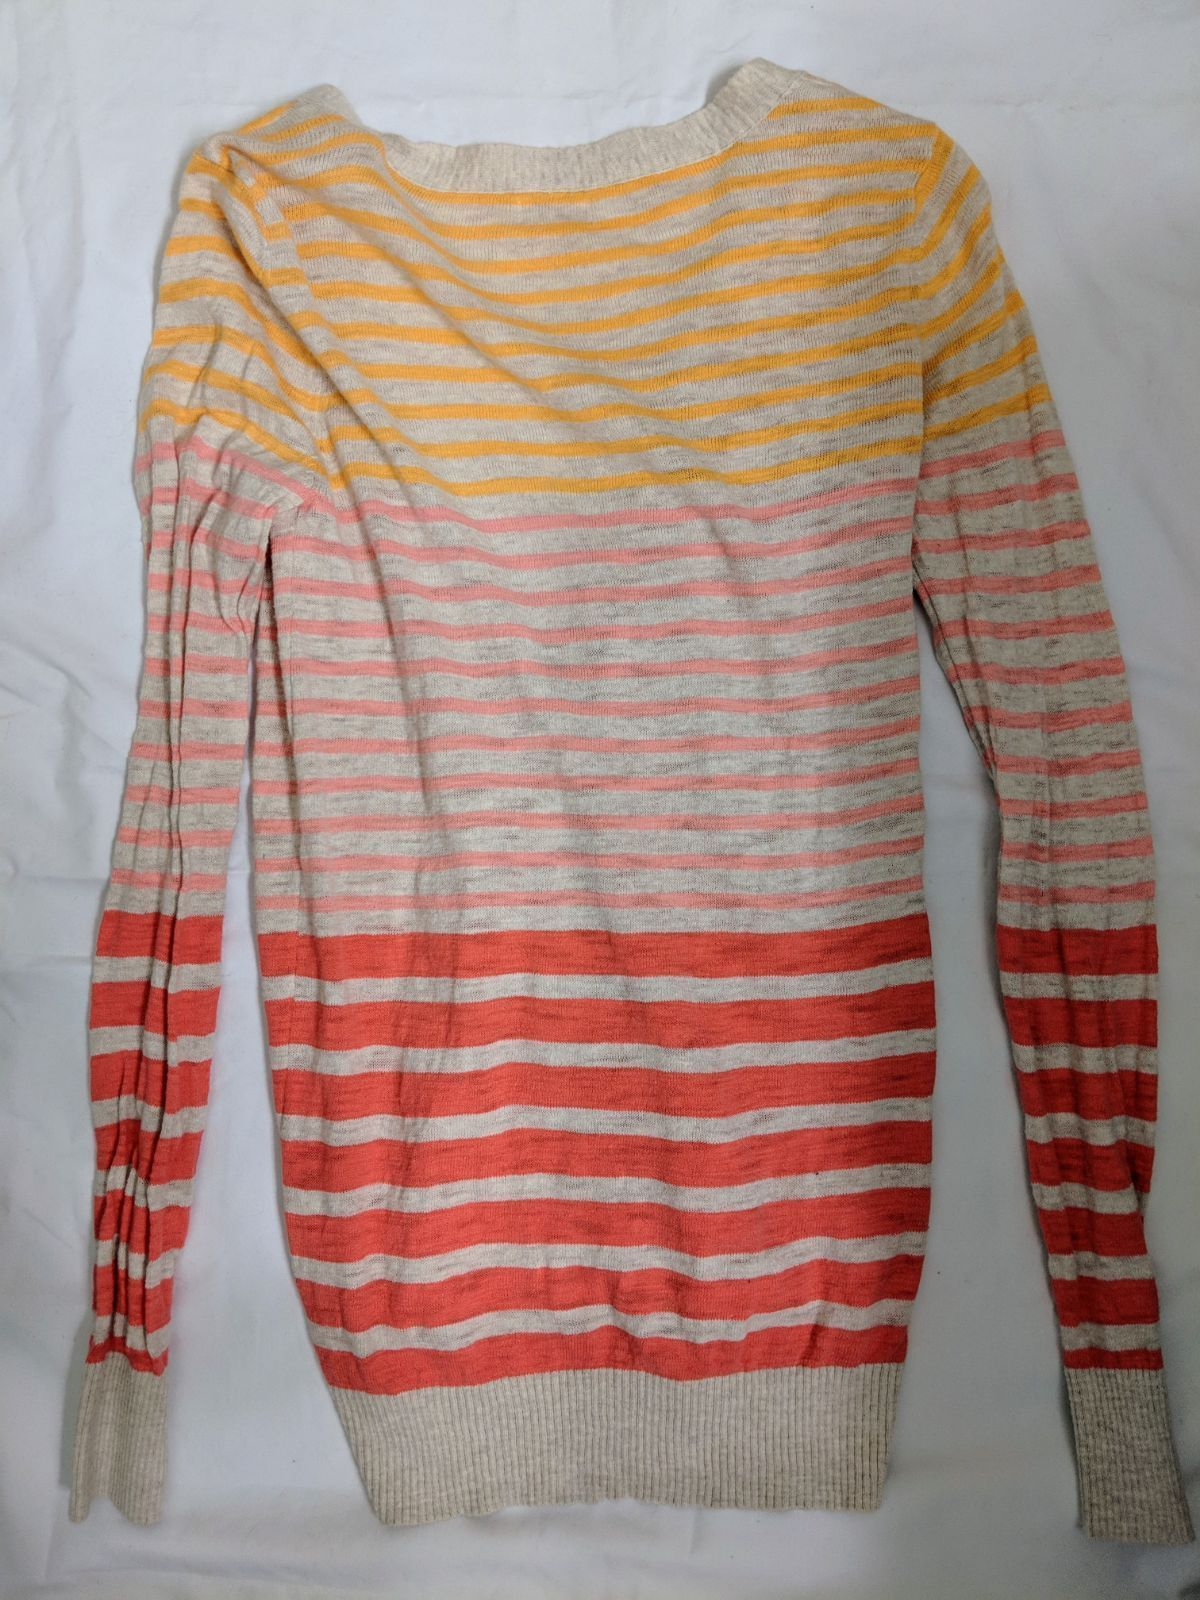 Mossimo Target Med Striped Cardigan - Mercari: BUY & SELL THINGS ...